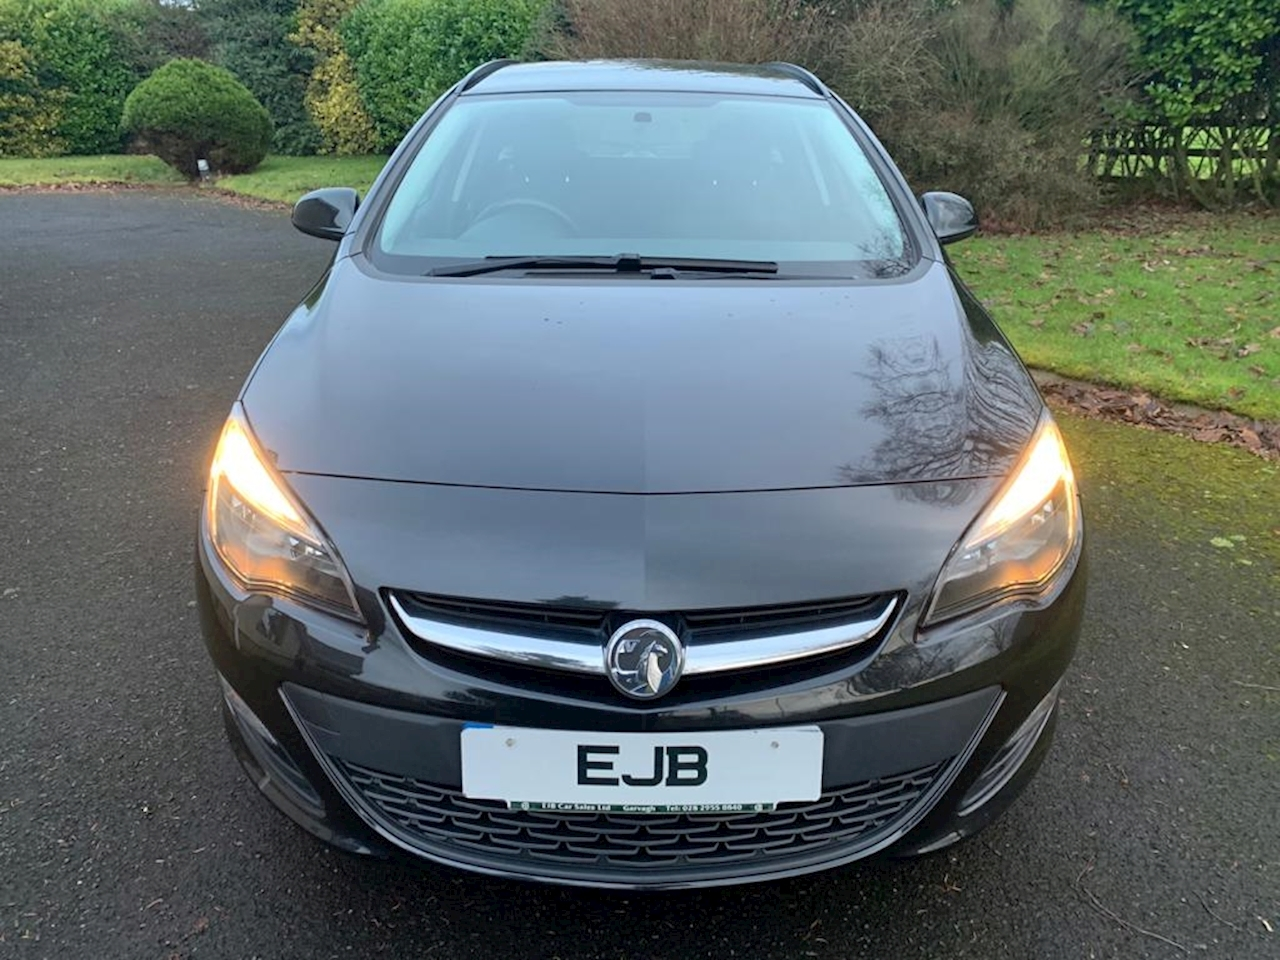 Vauxhall Astra Design Cdti Ecoflex S/S Estate 1.6 Manual Diesel